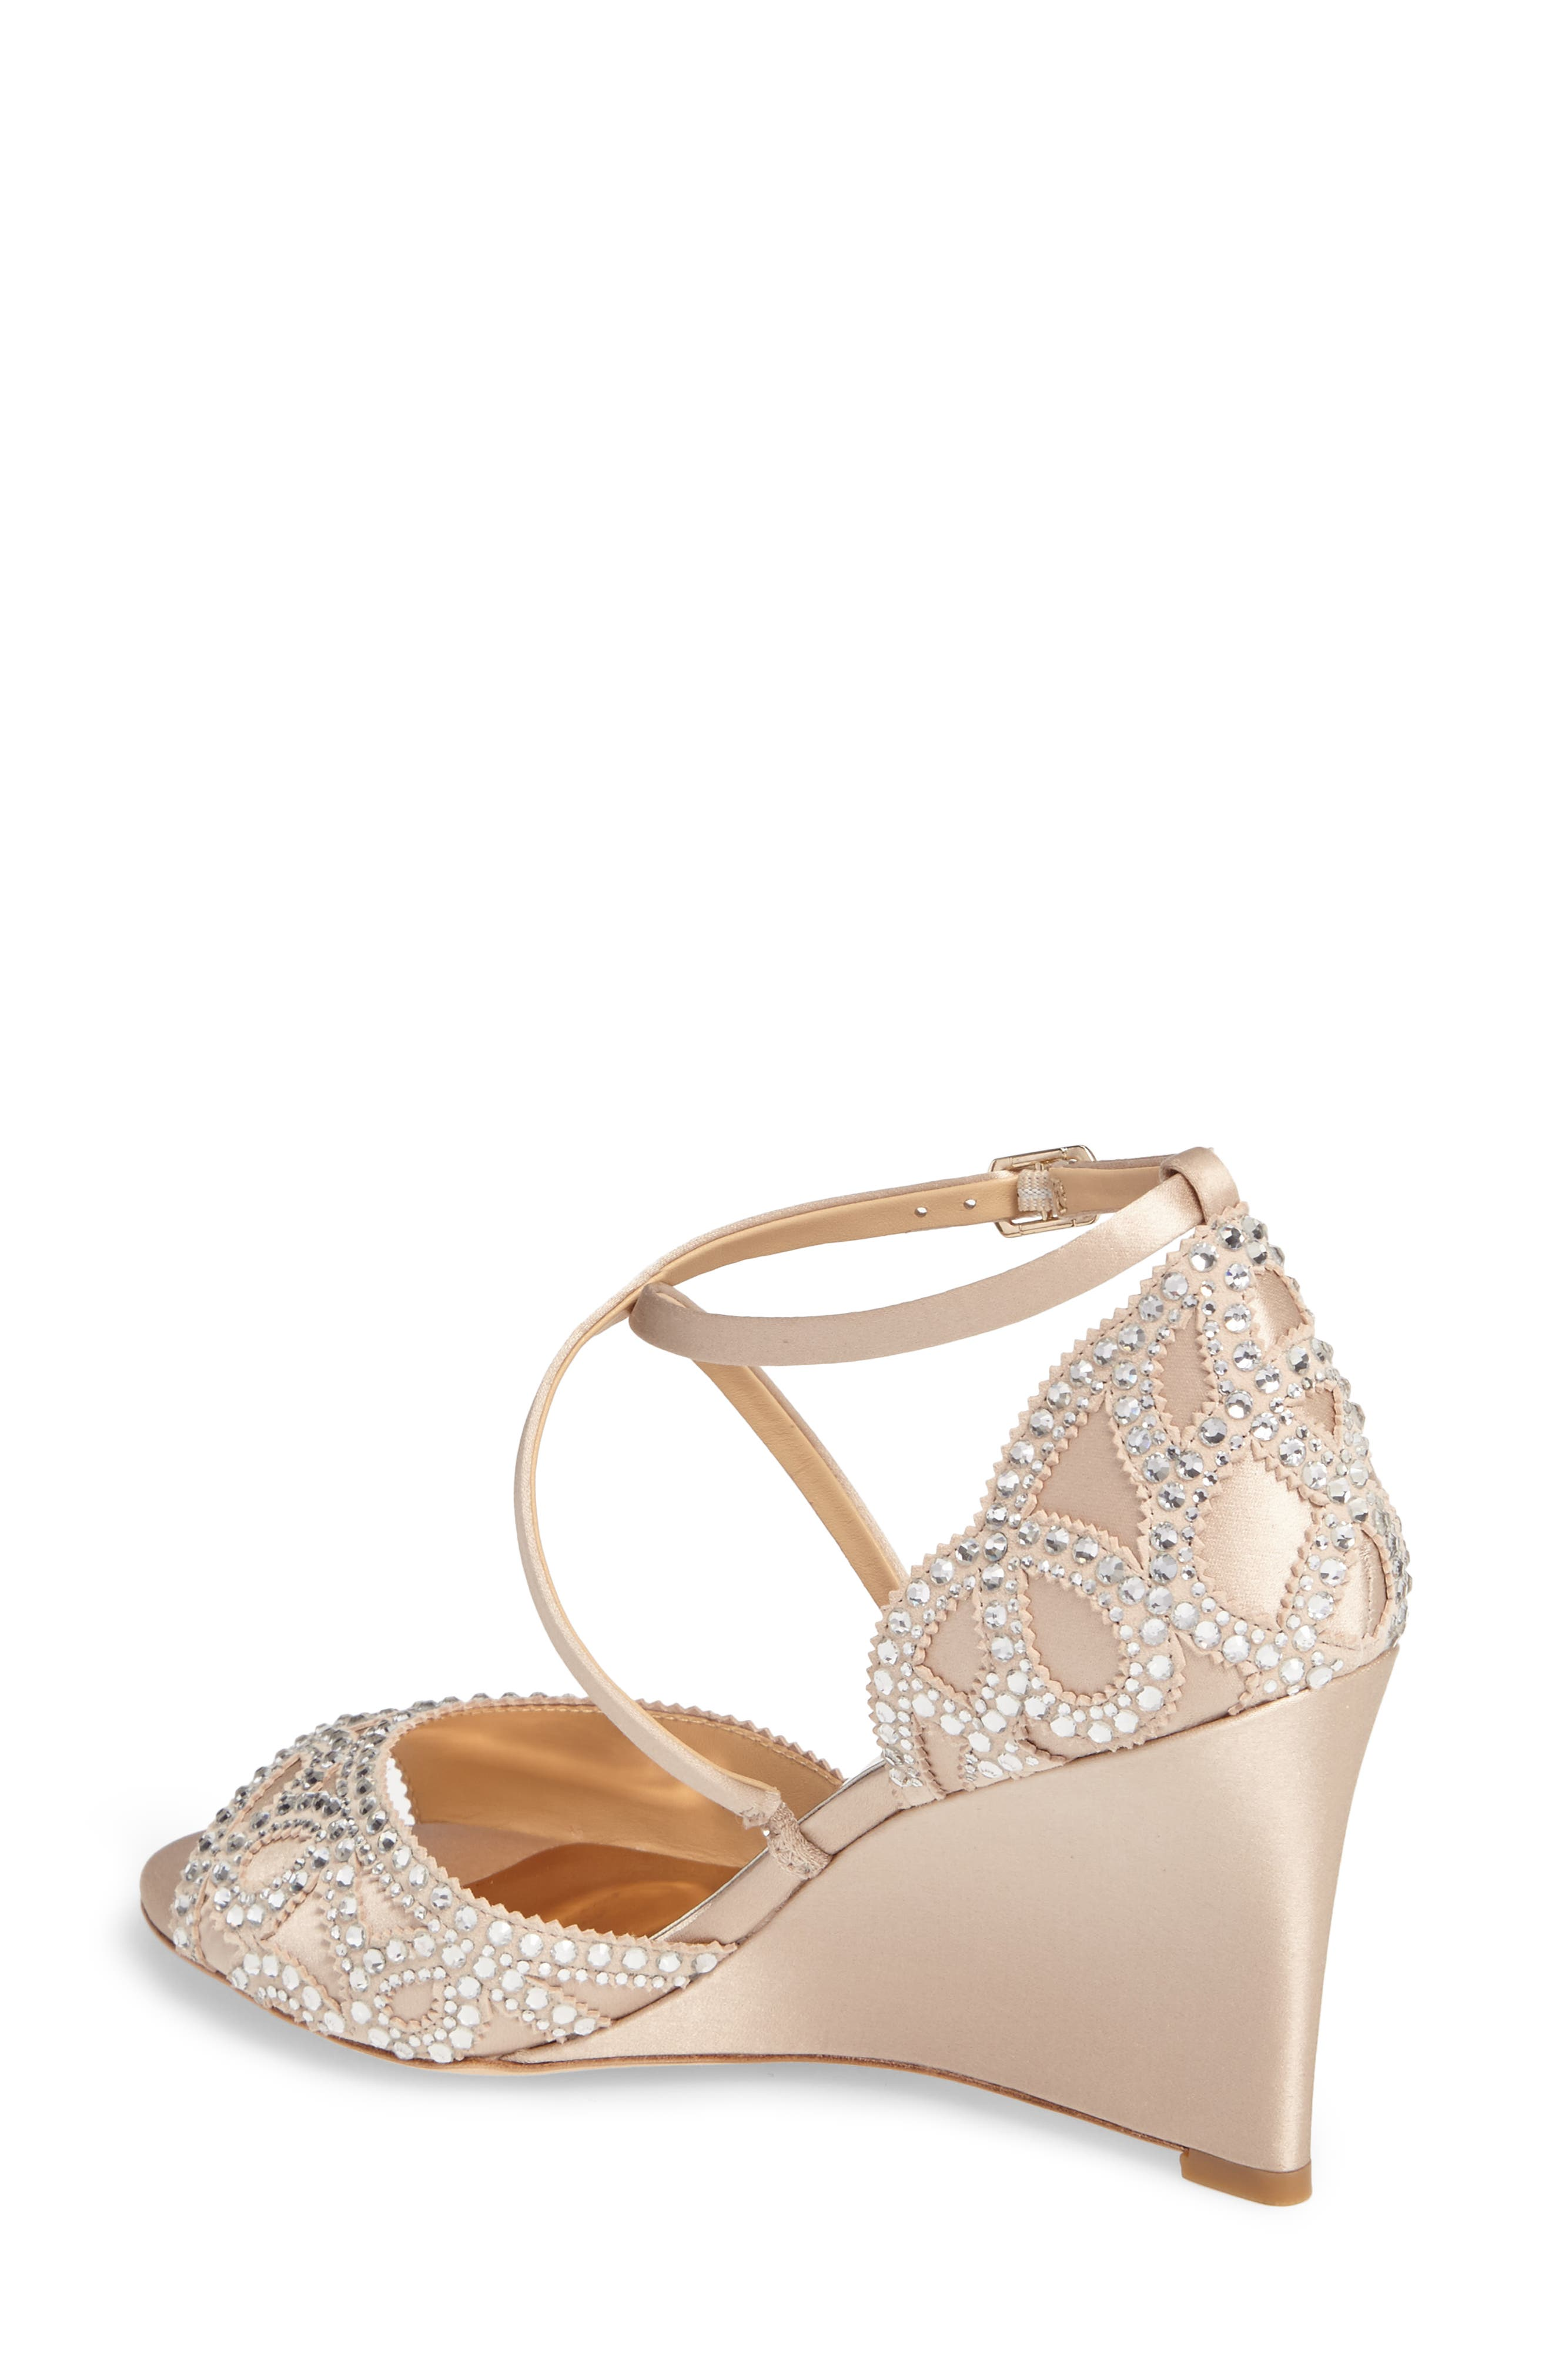 Winter Strappy Wedge Pump,                             Alternate thumbnail 2, color,                             Nude Satin